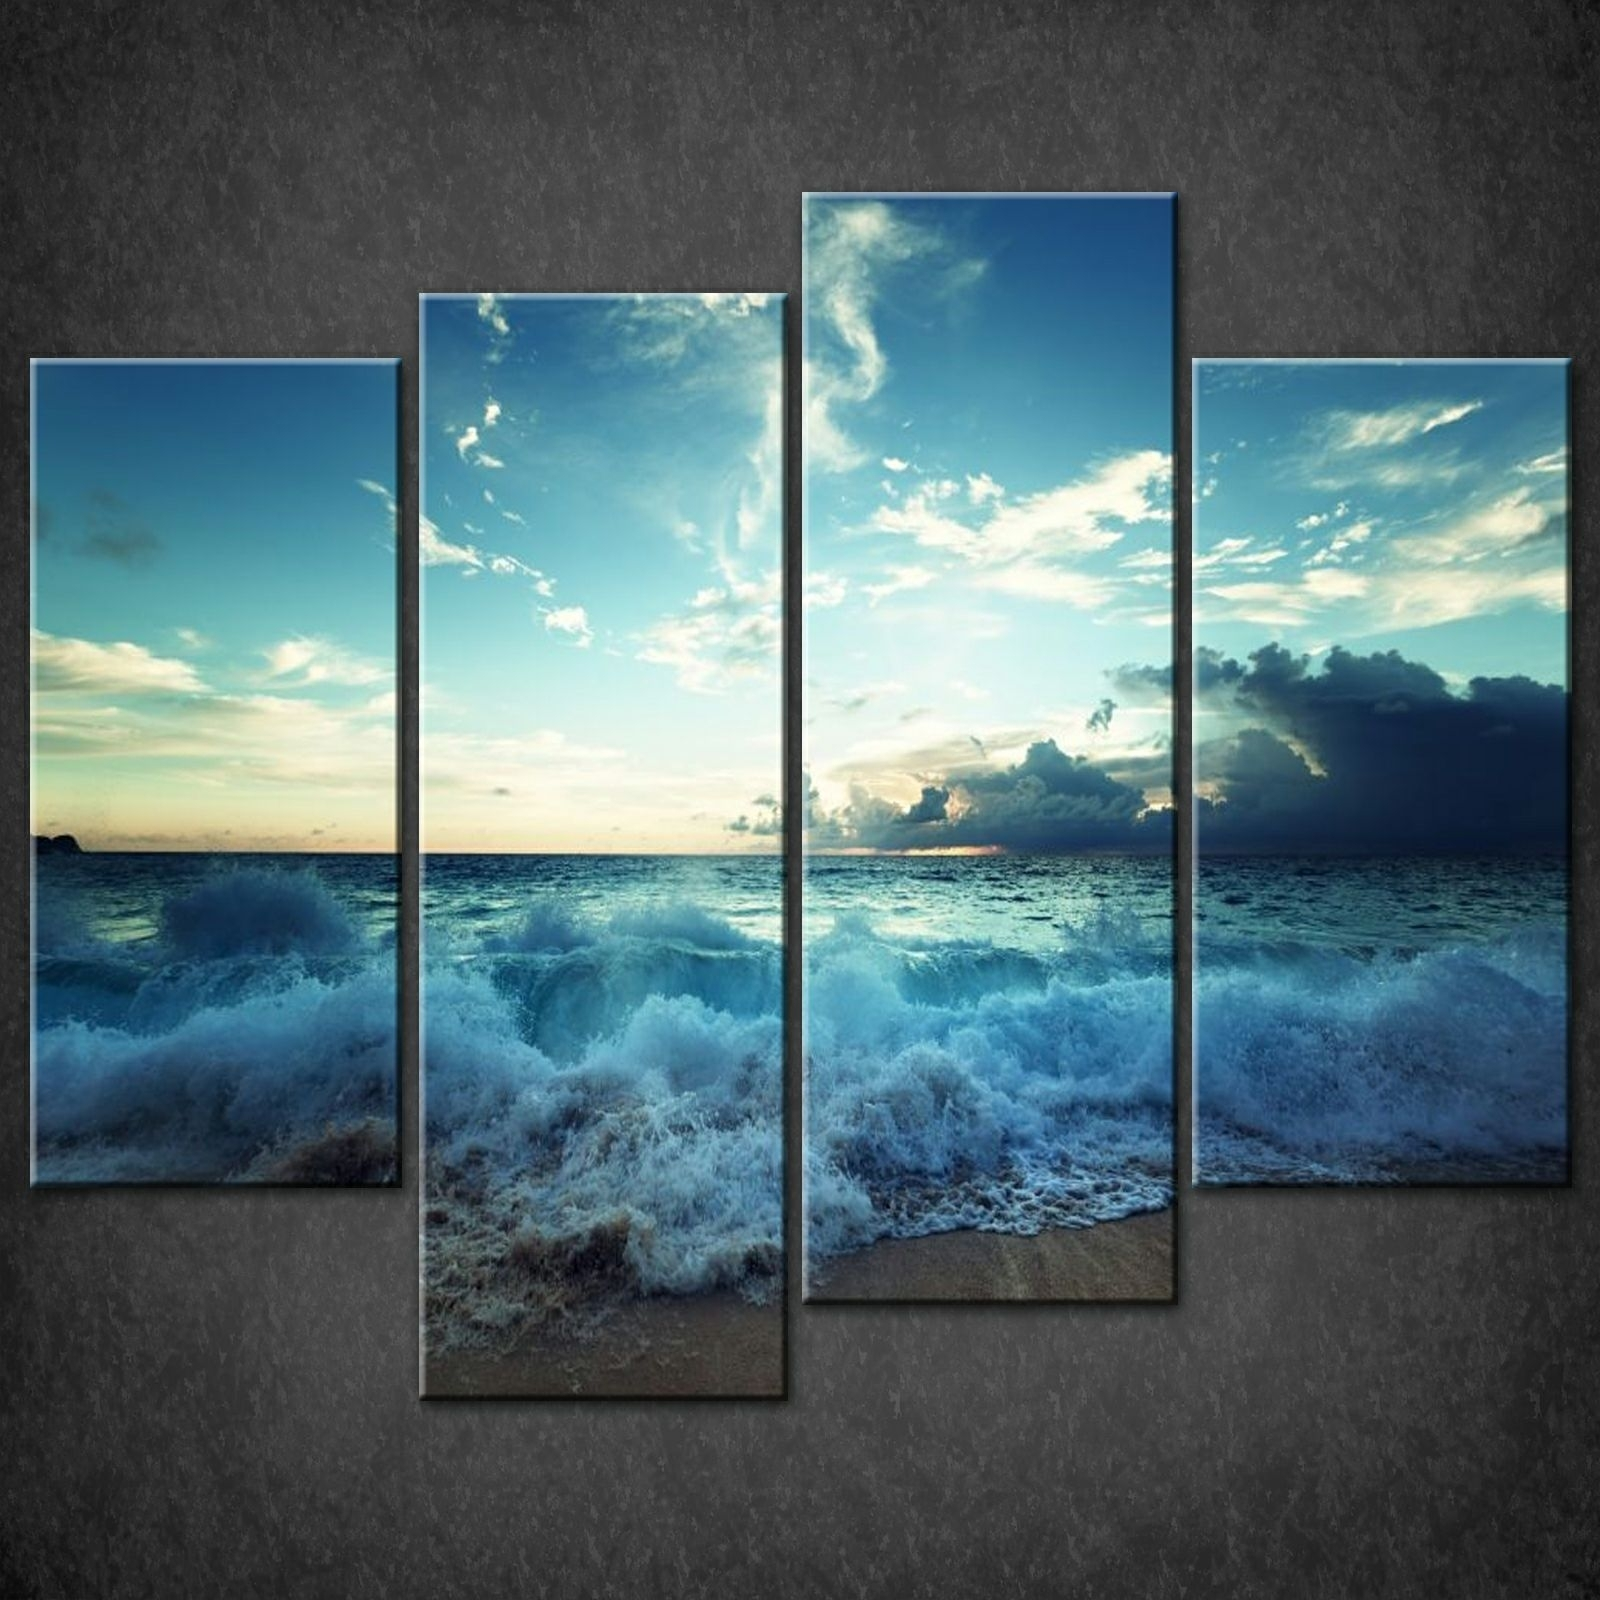 Large Teal Seascape Sunset Canvas Pictures Wall Art Split Multi 4 Within Latest Duck Egg Blue Canvas Wall Art (View 10 of 15)